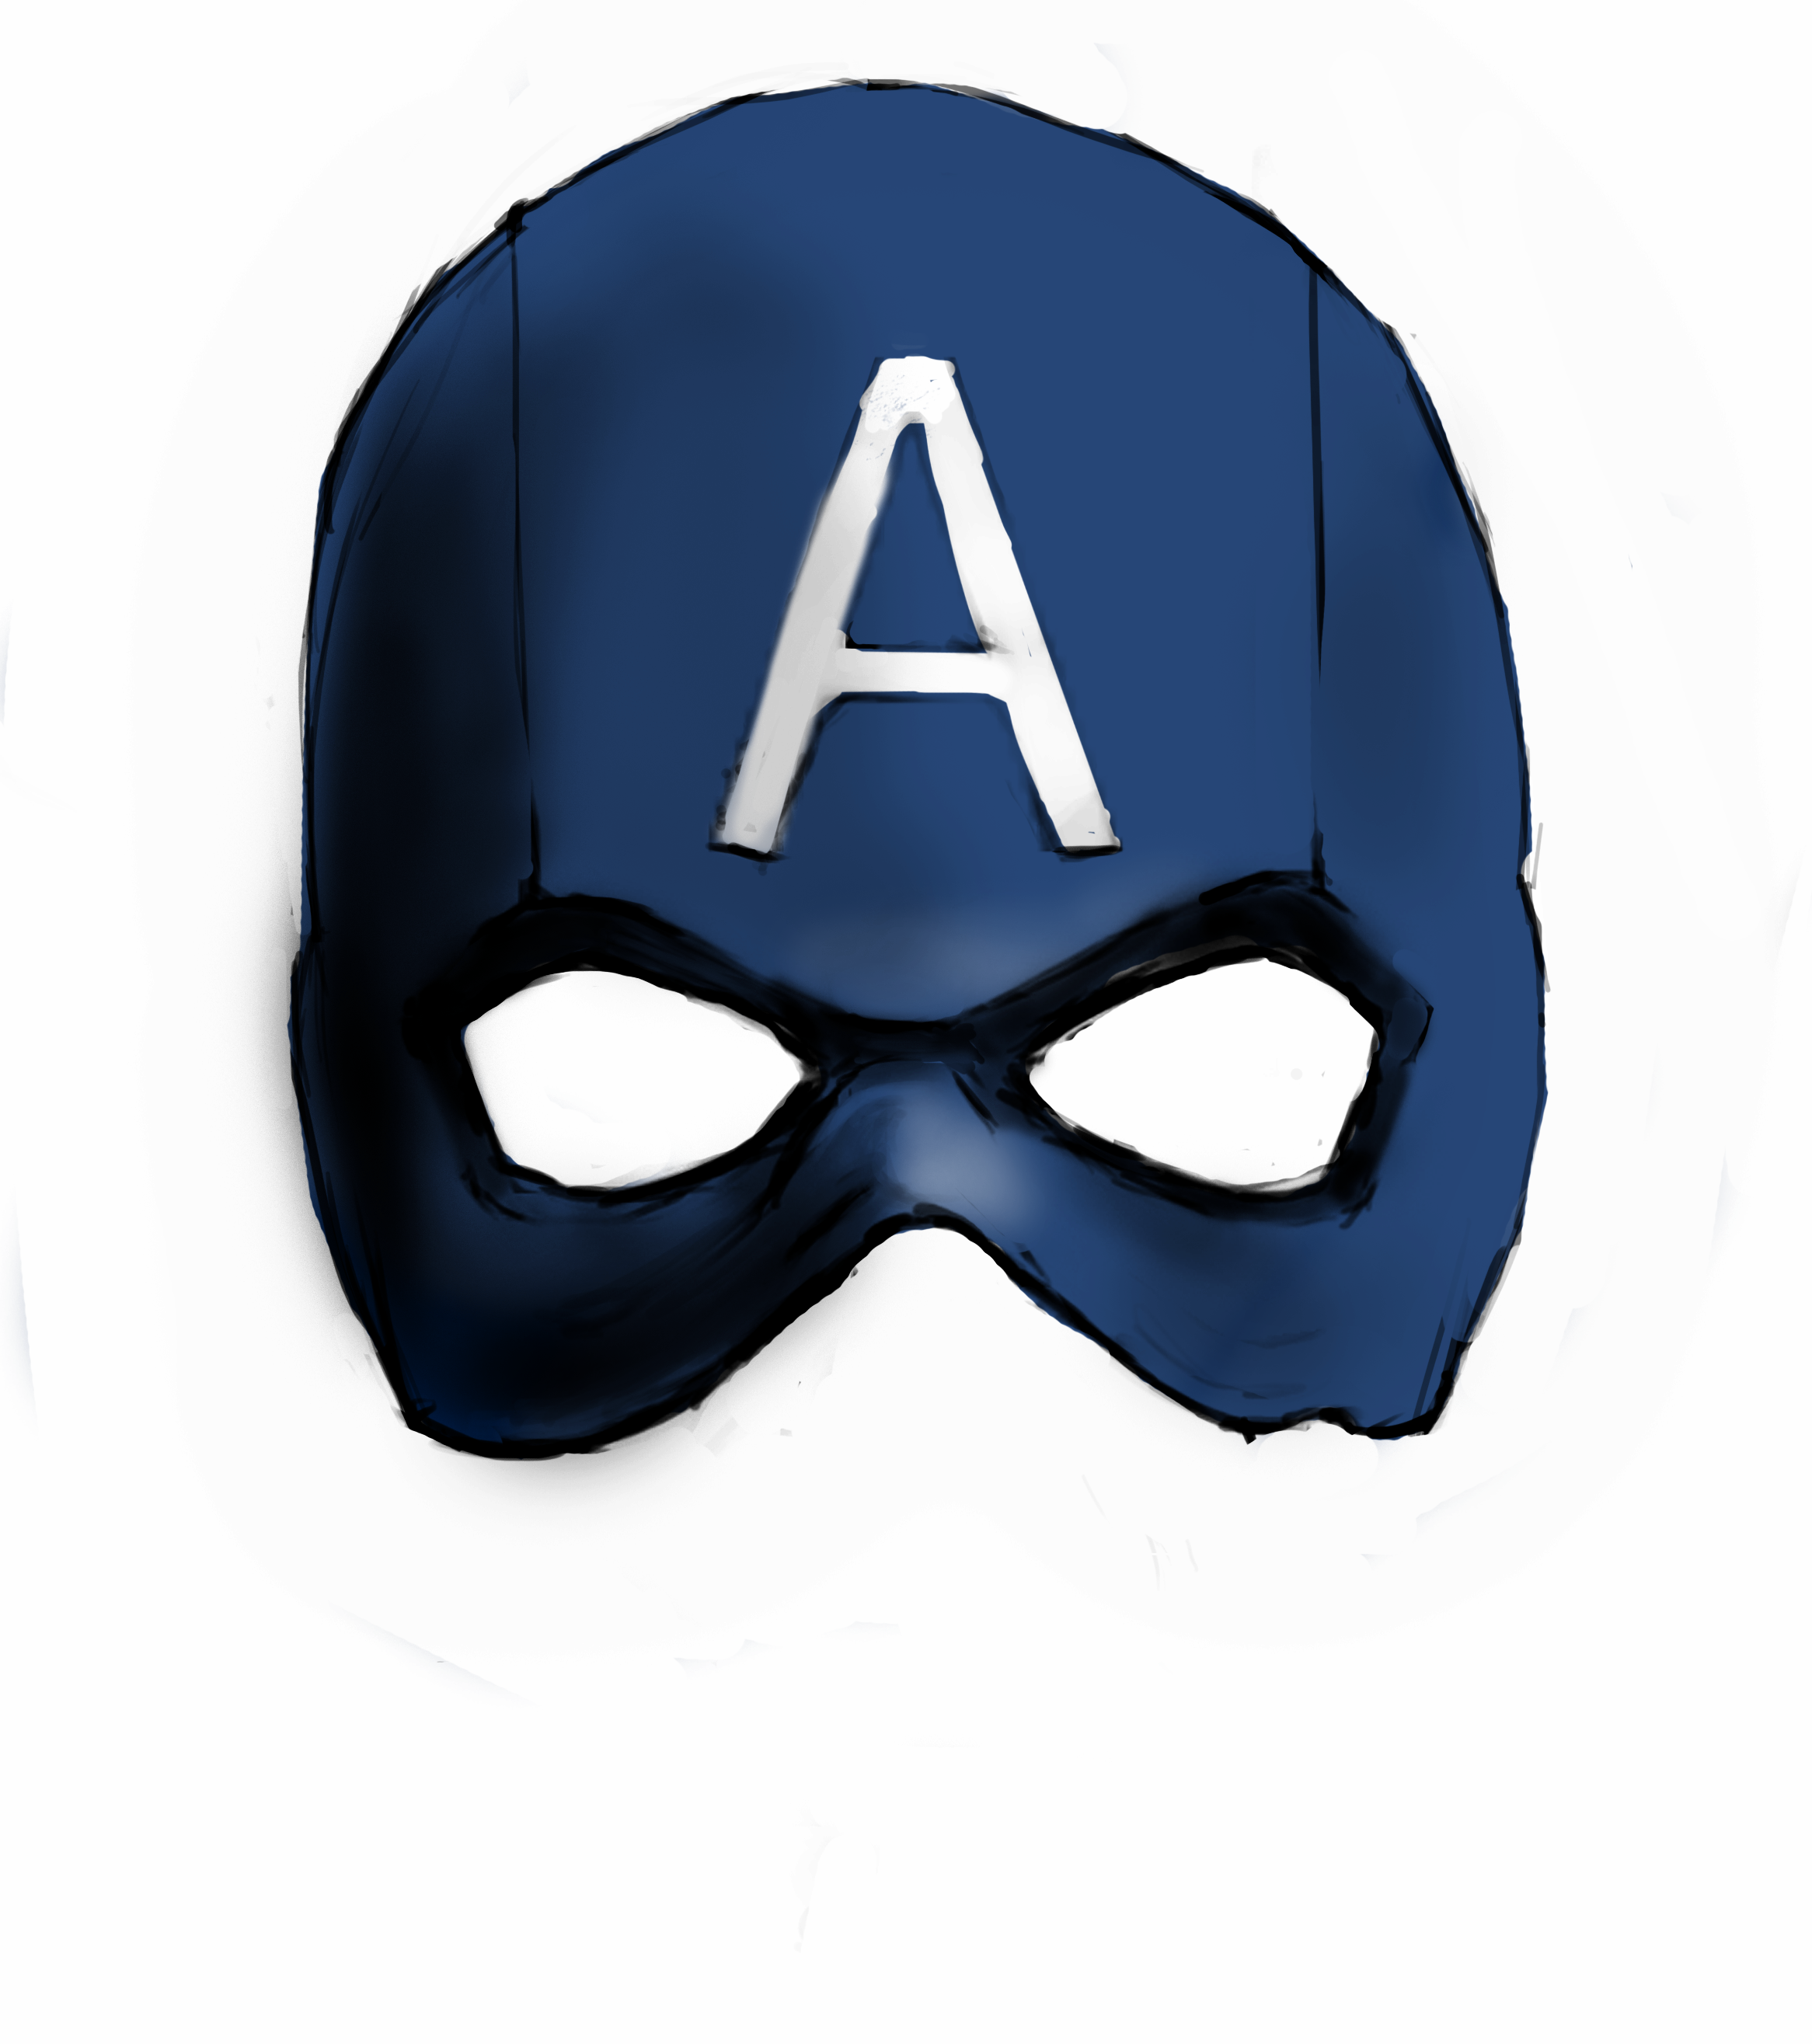 Captain America mask by Chief501 on DeviantArt